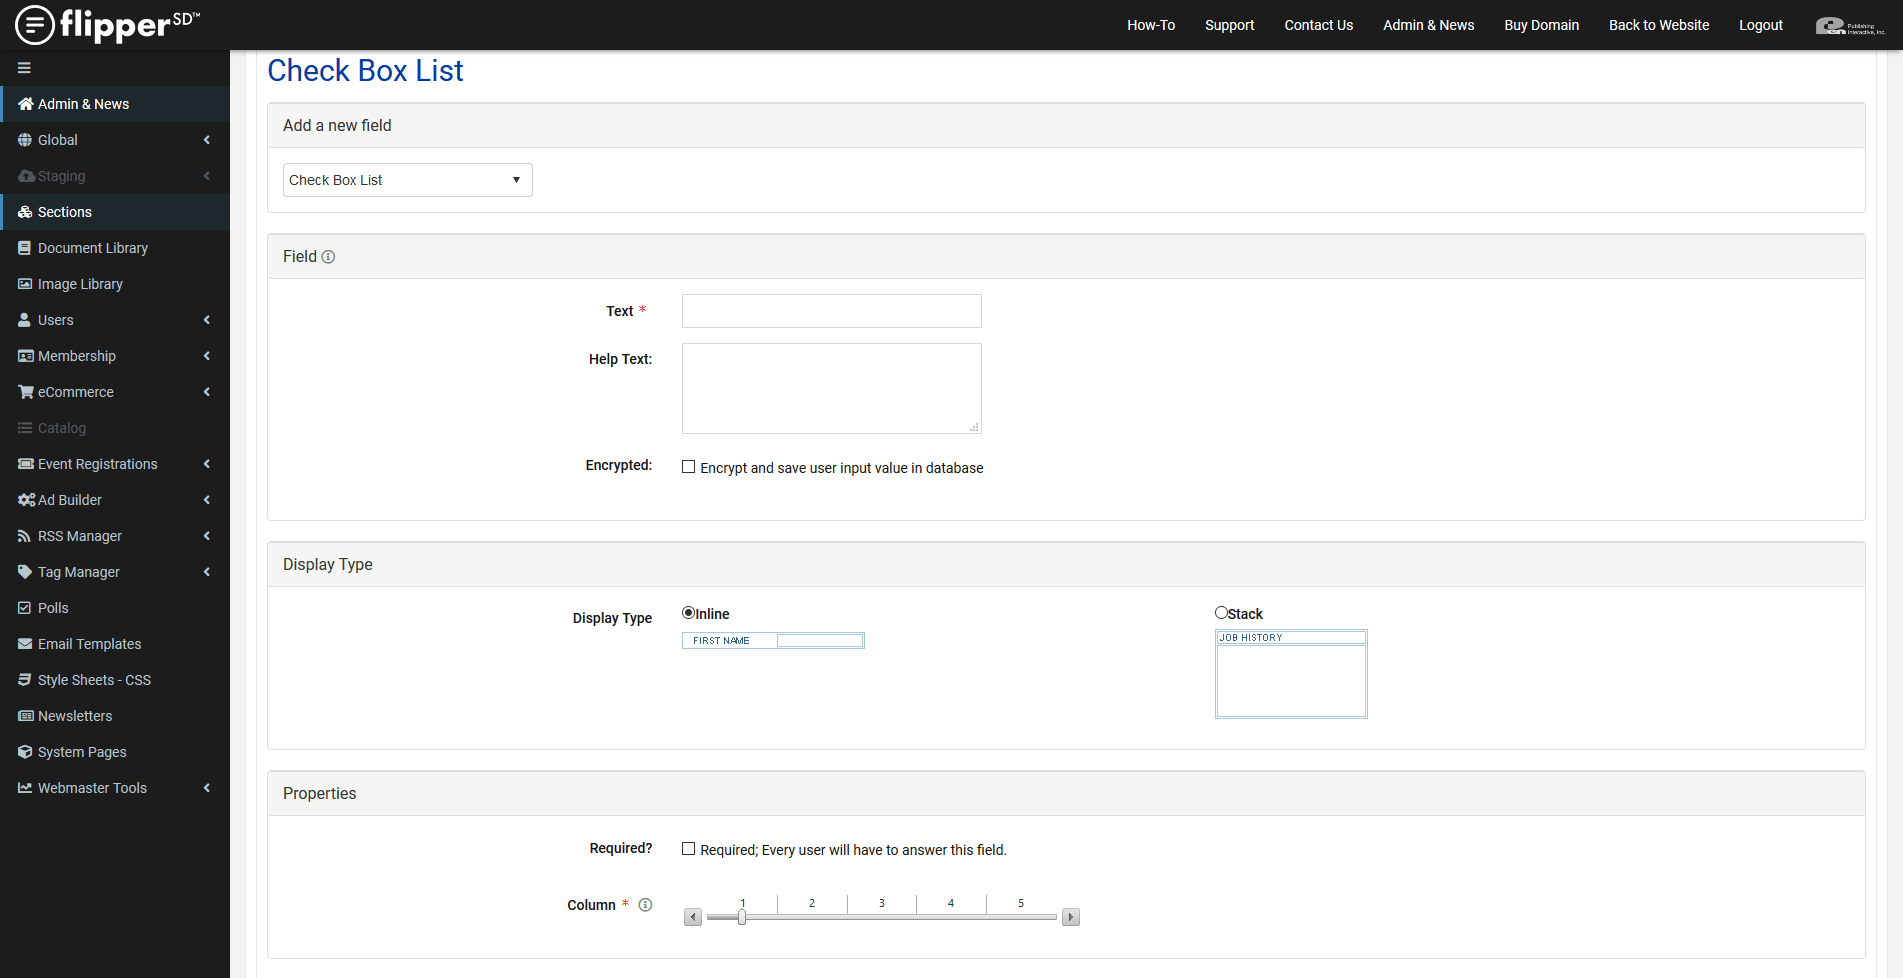 FormBuilder-Check Box List